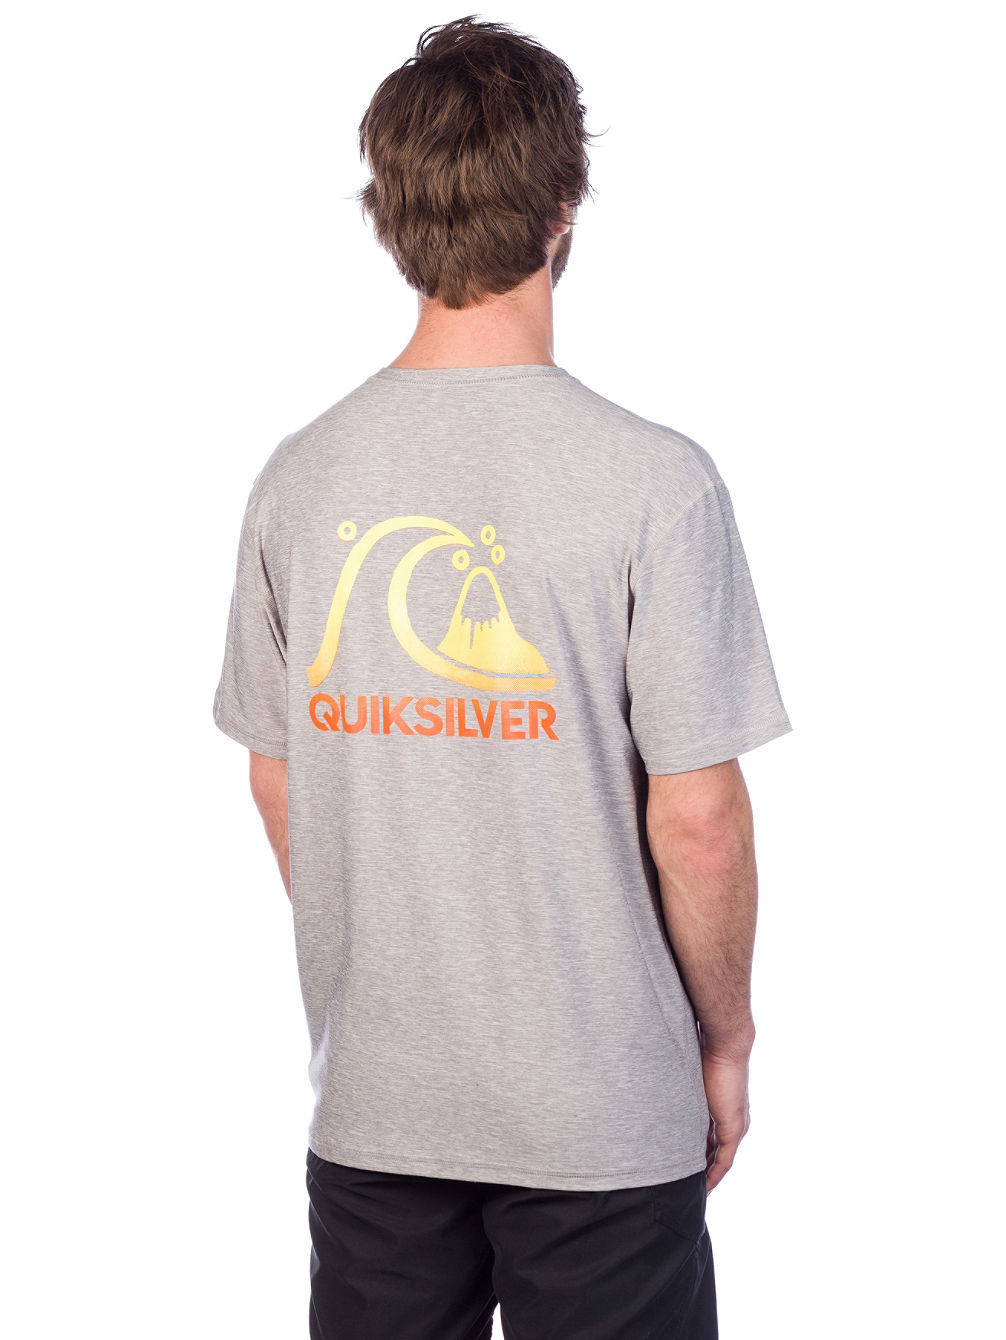 a23cce4399 Buy Quiksilver Heritage Surf Tee online at Blue Tomato